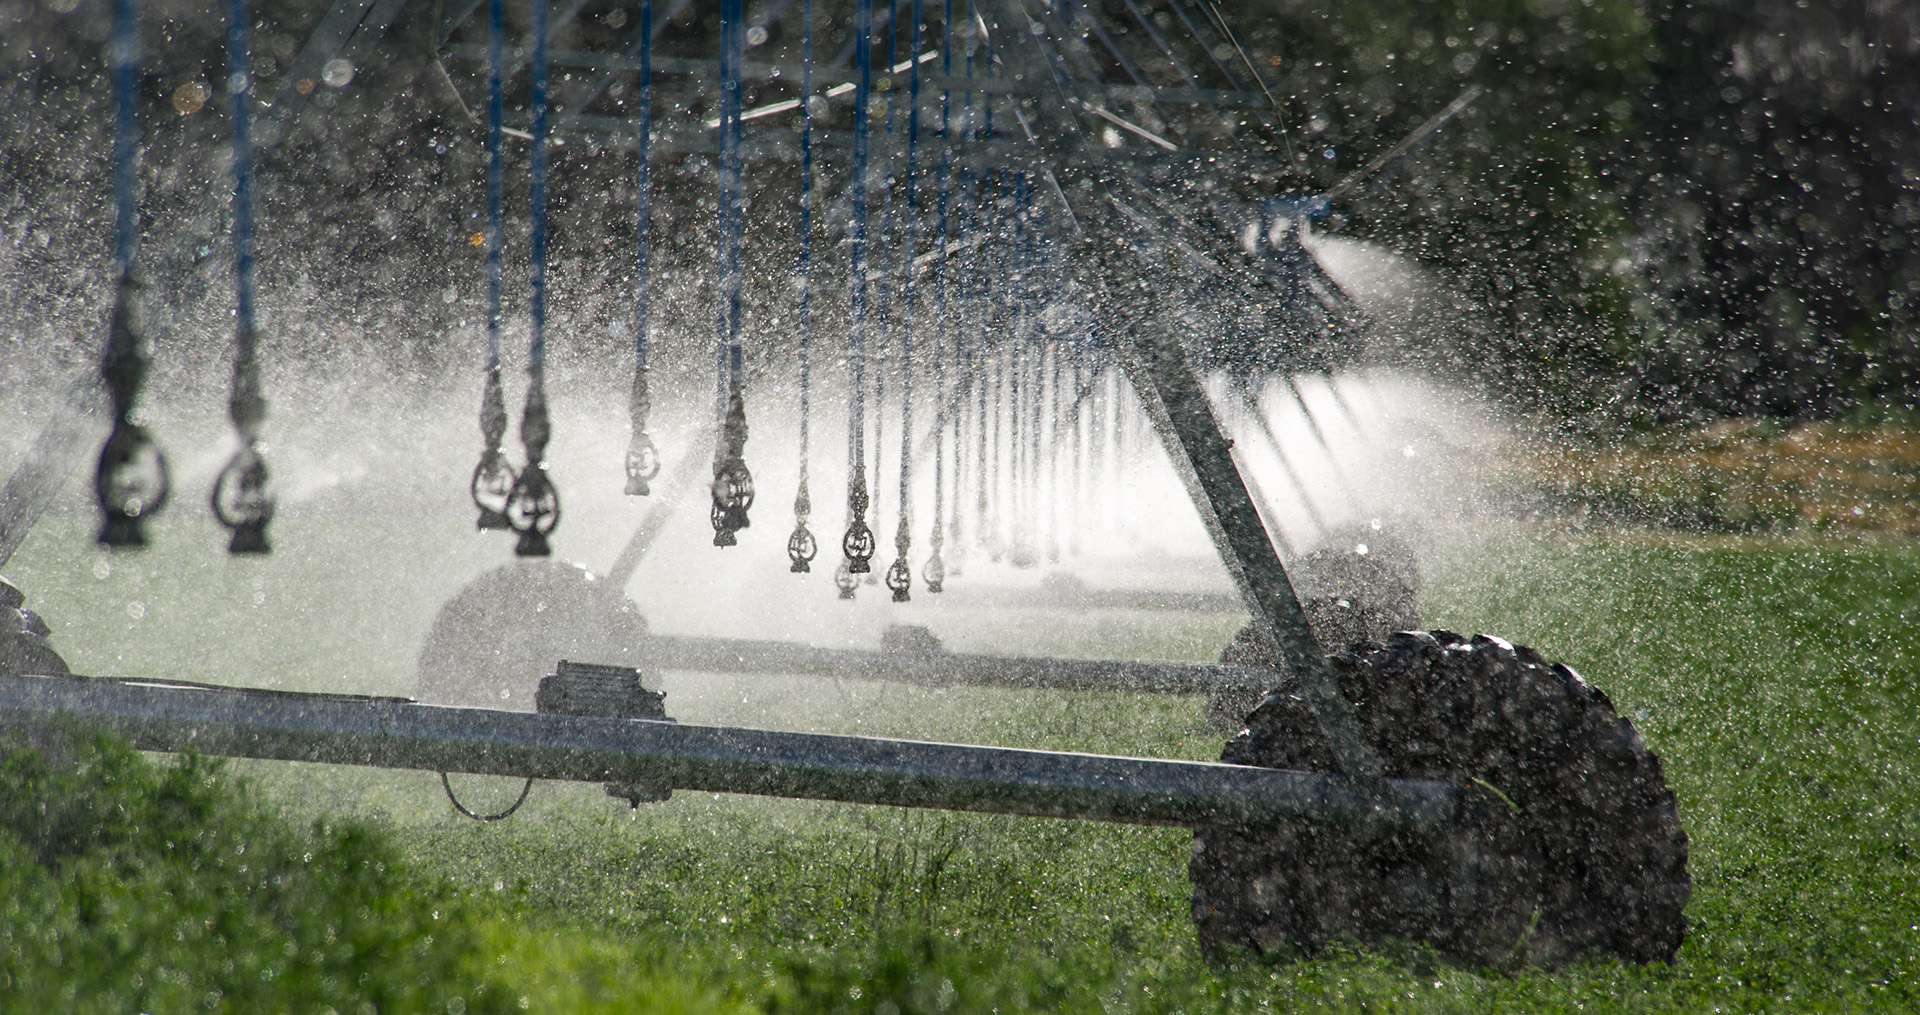 irrigation sprinklers watering crops